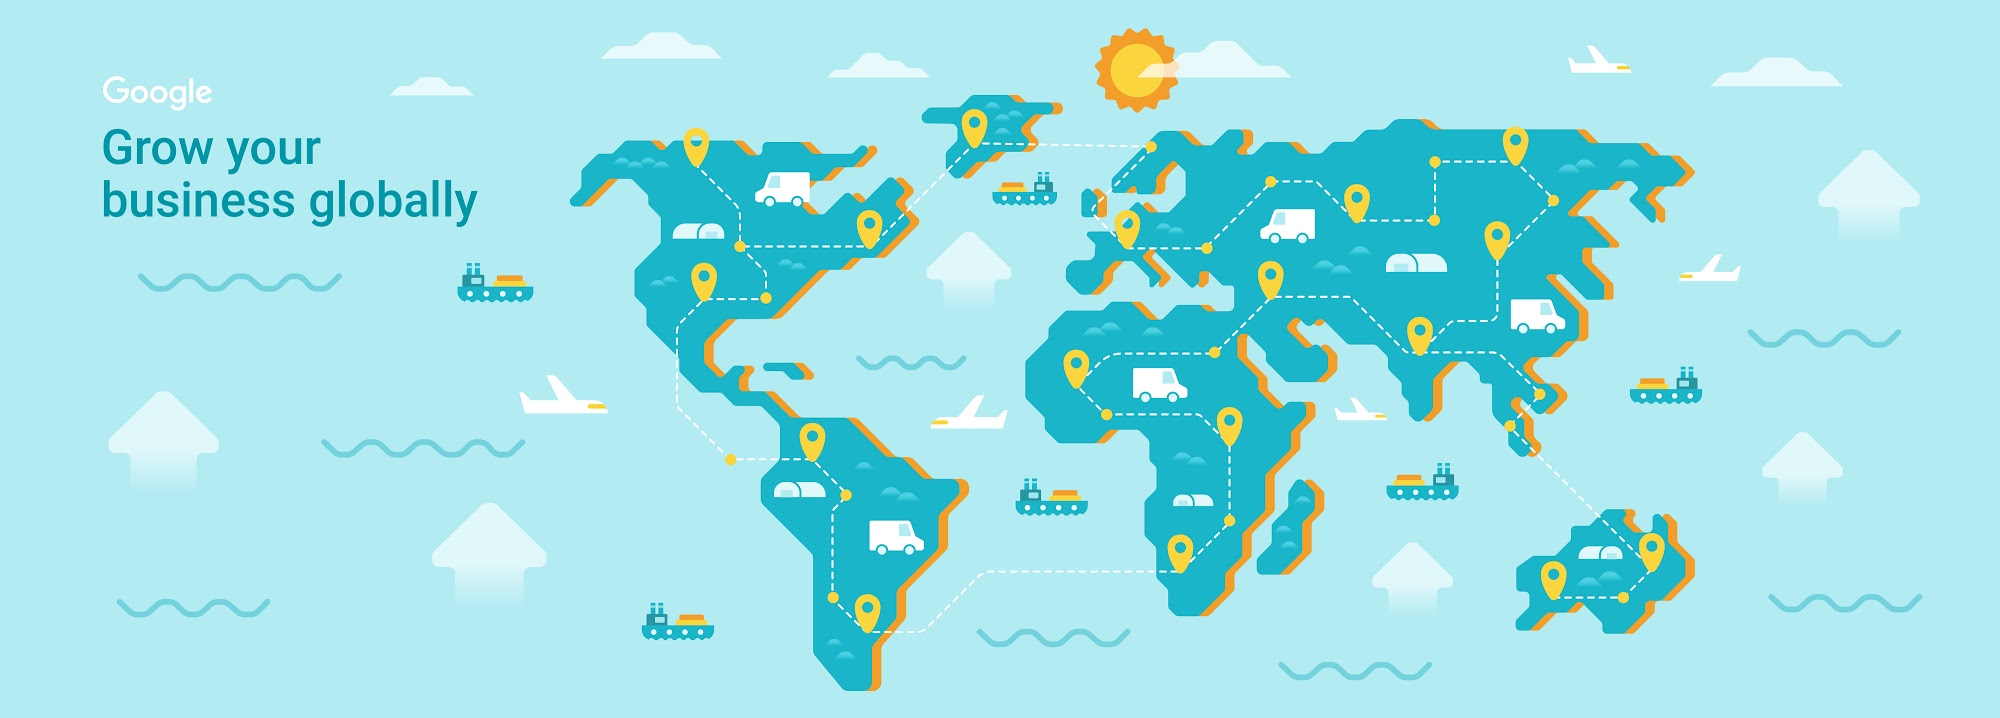 how to grow your business internationally